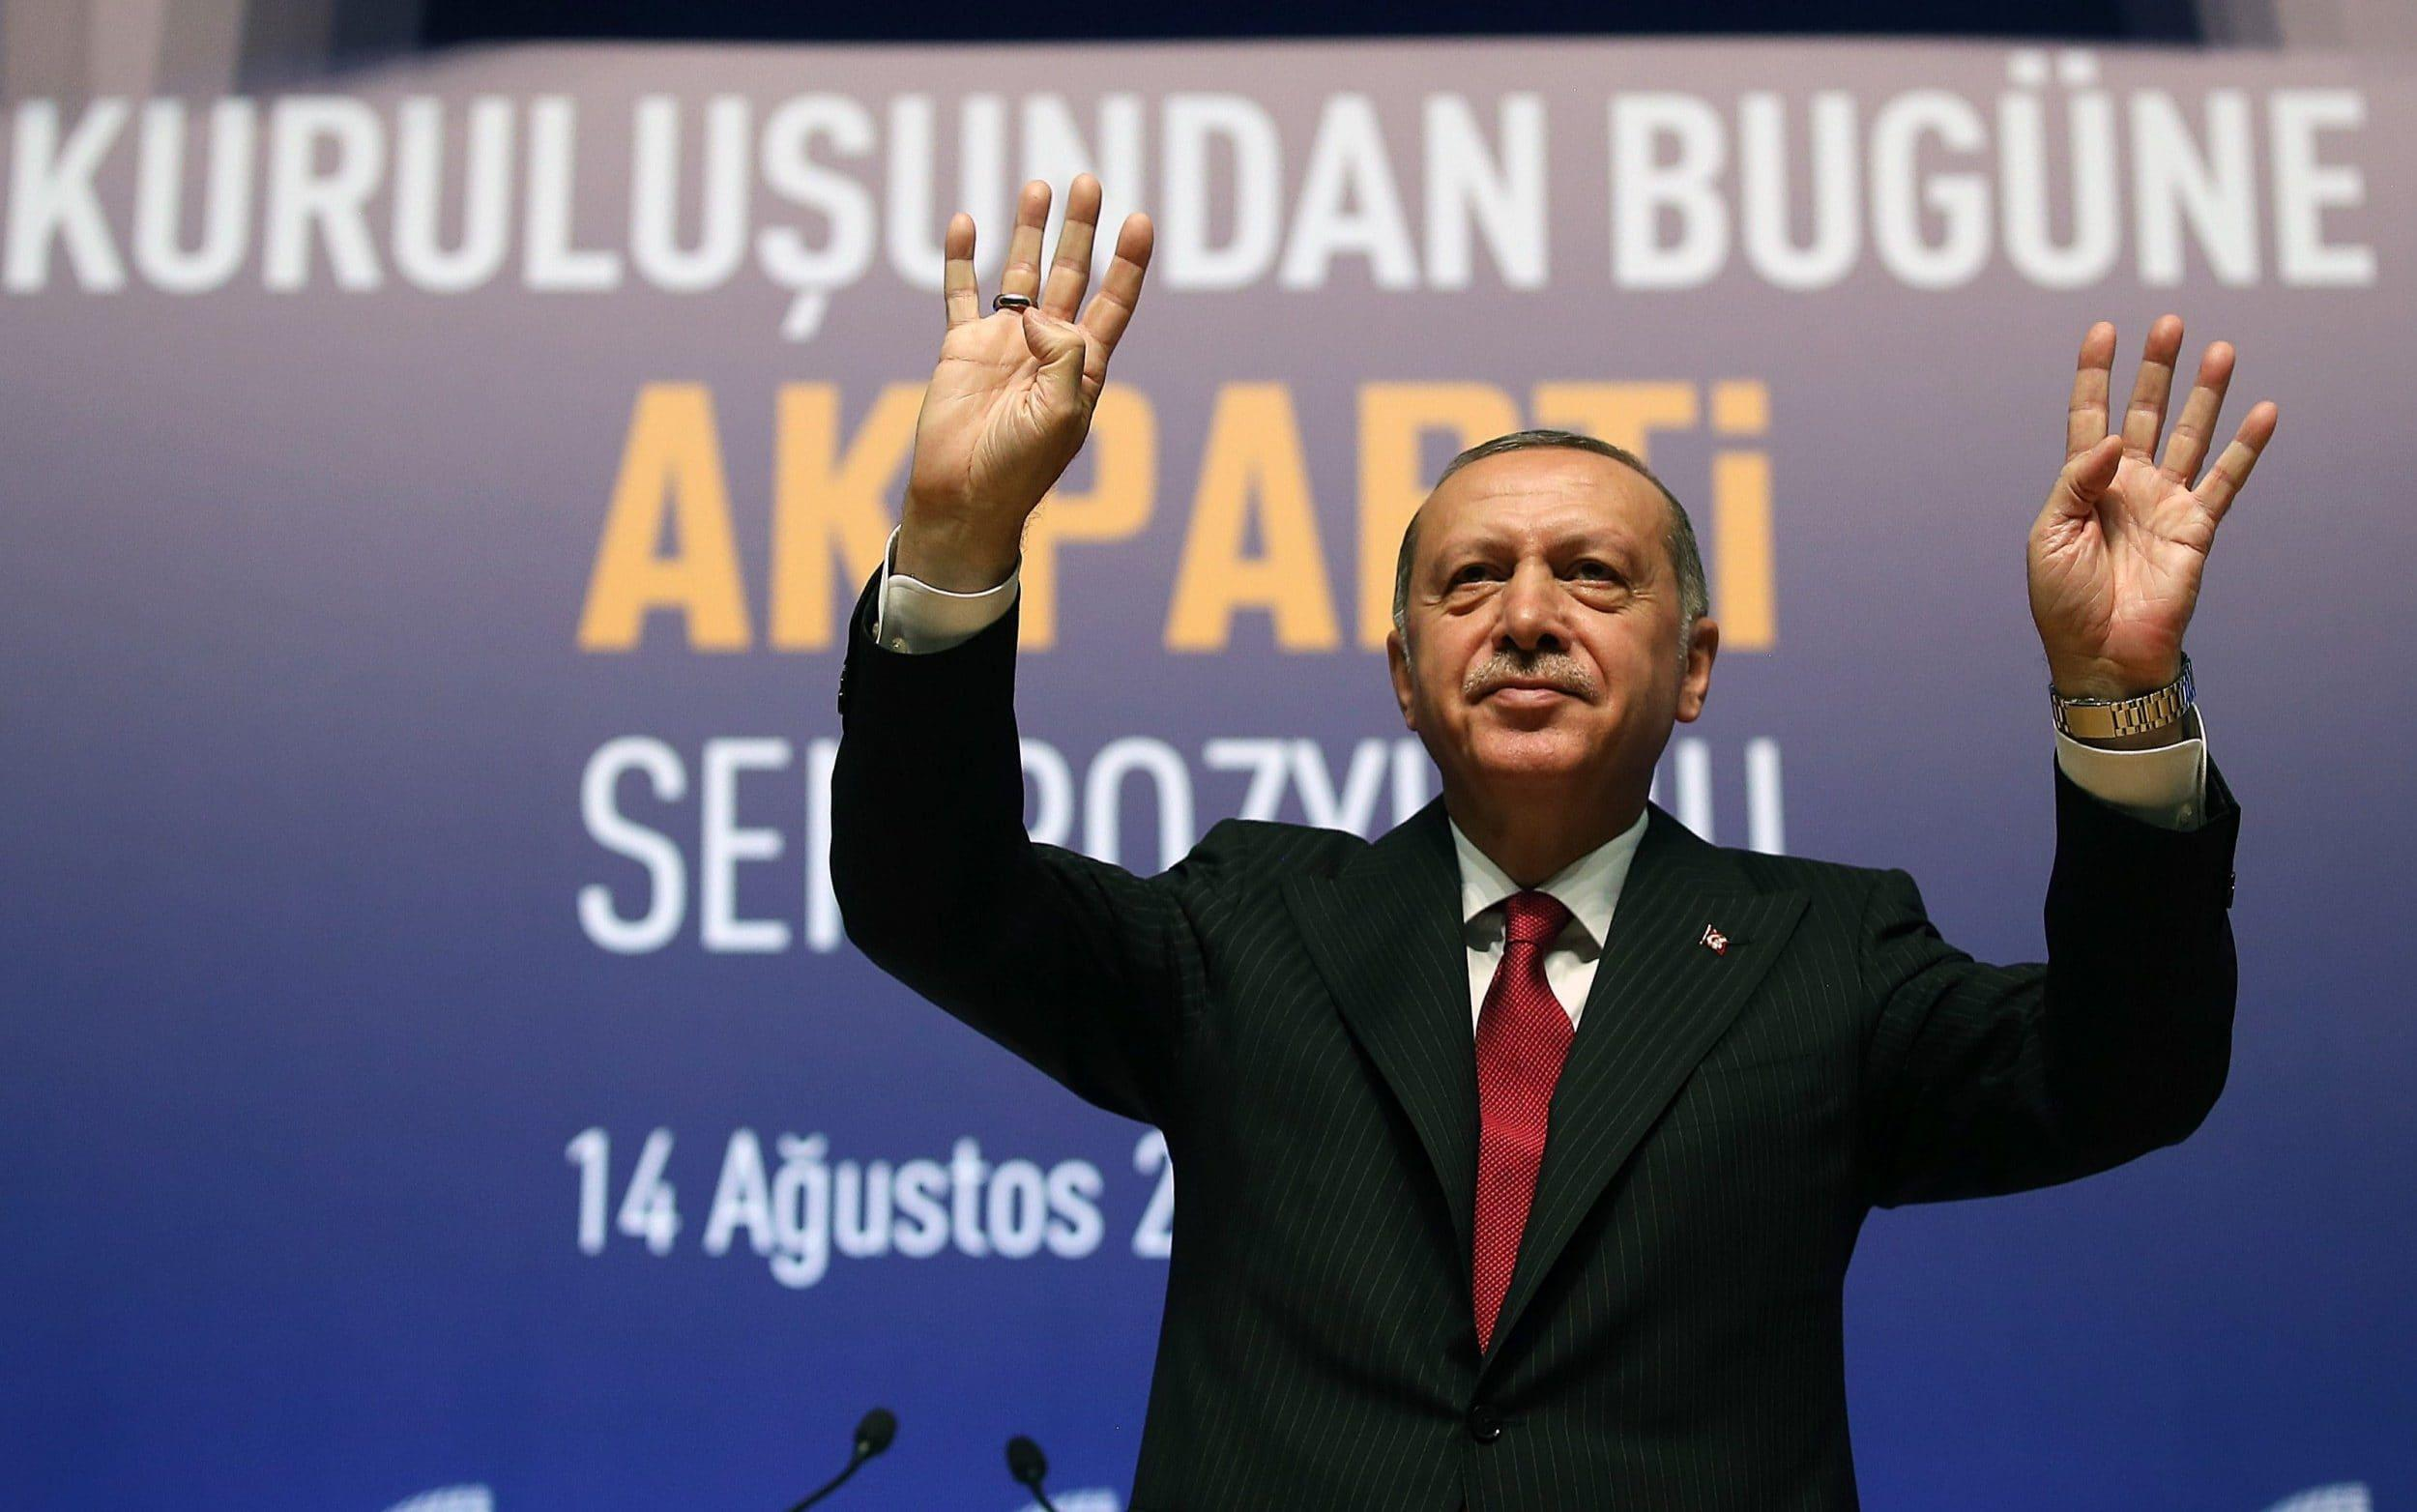 Erdogan calls for boycott of iPhones as he targets American consumer products in retaliation for sanctions